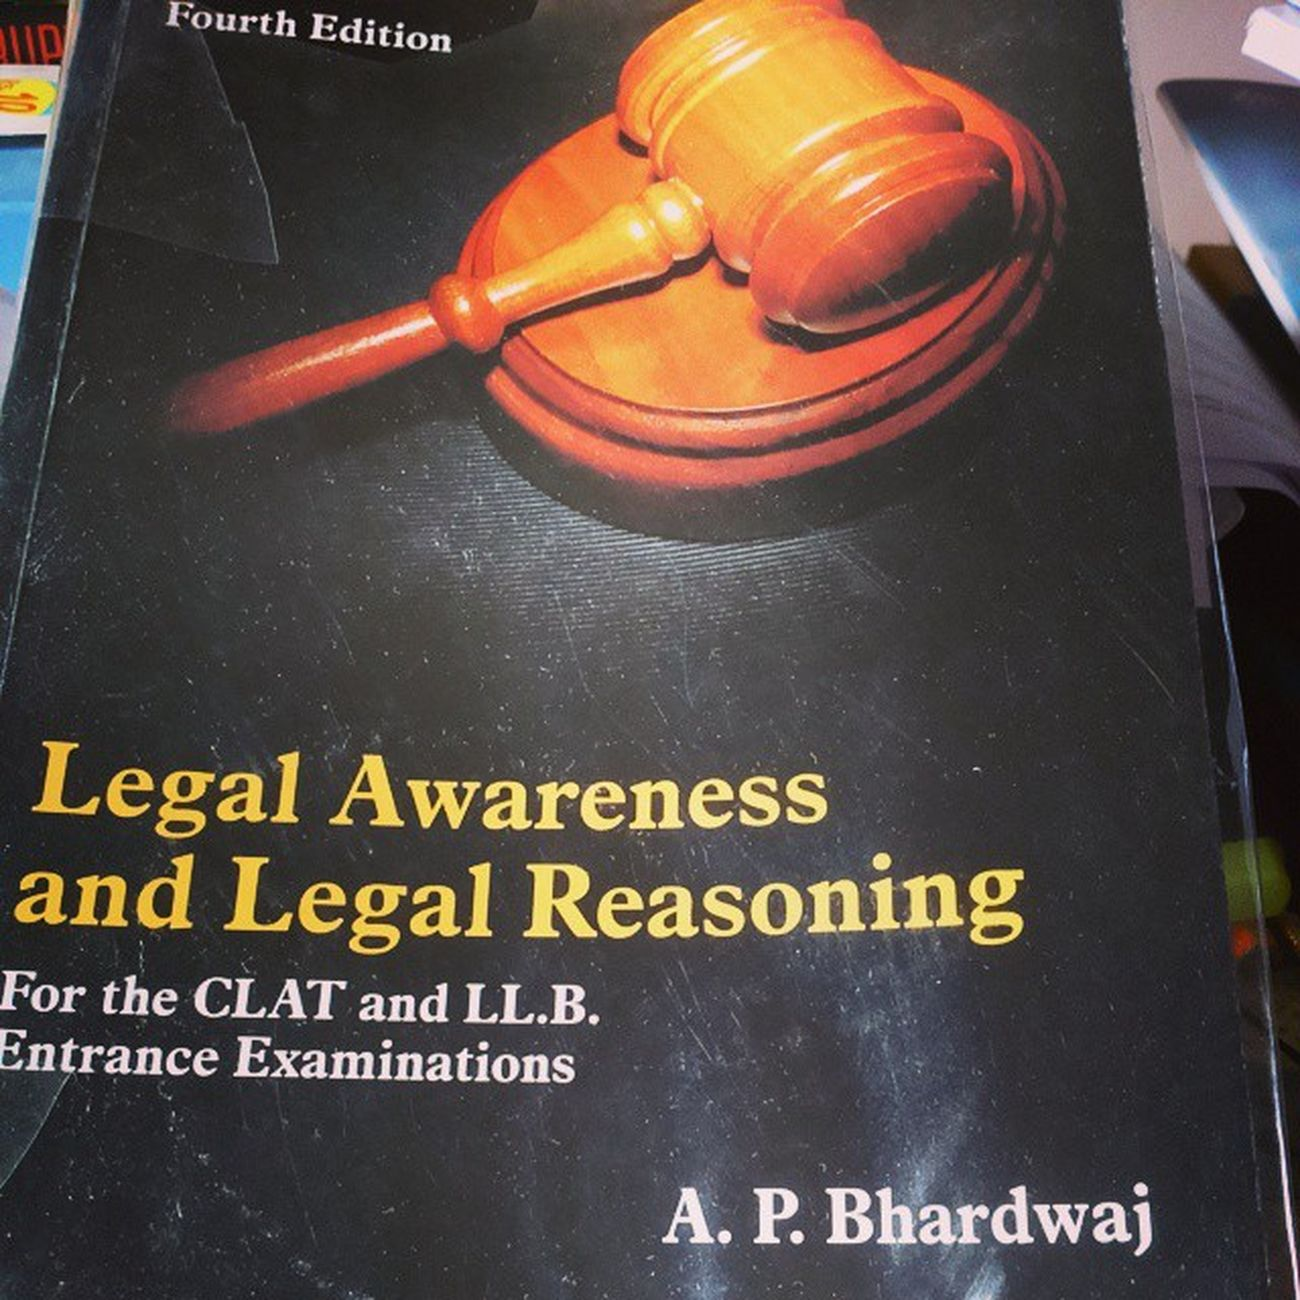 Legalreasoning Clatpreparation Tough :-P